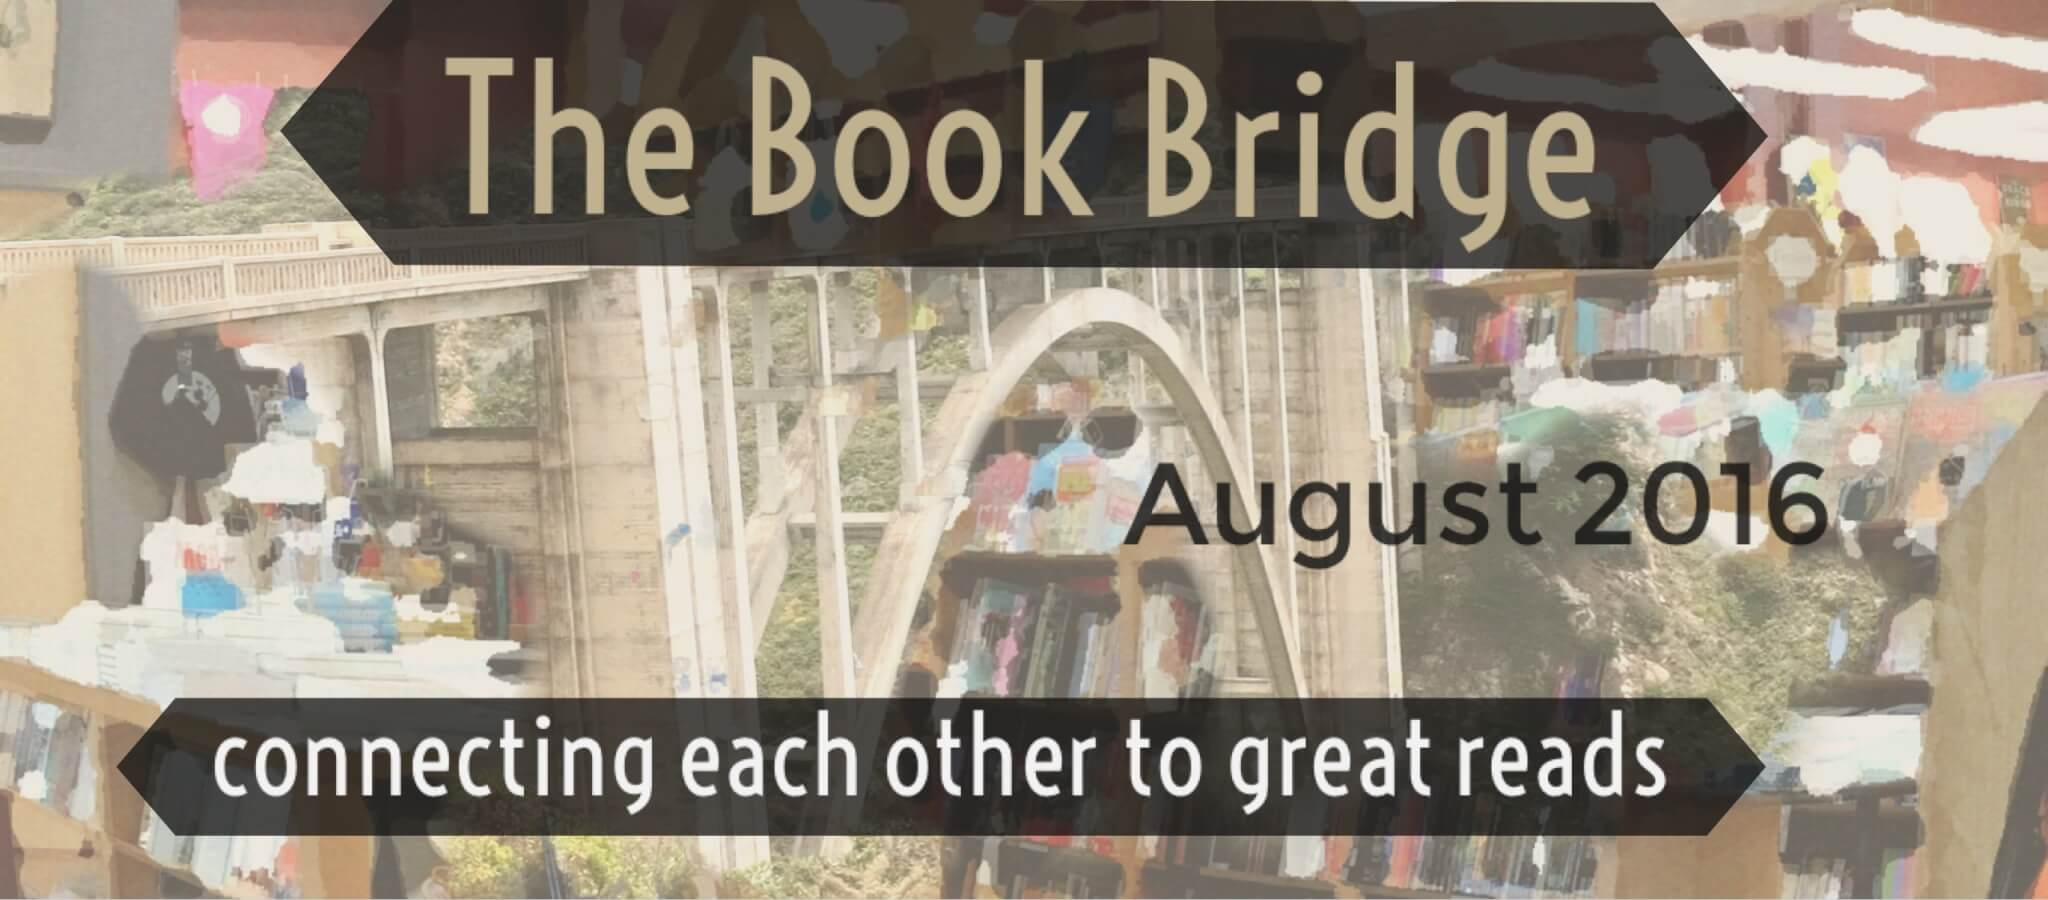 The Book Bridge August 2016